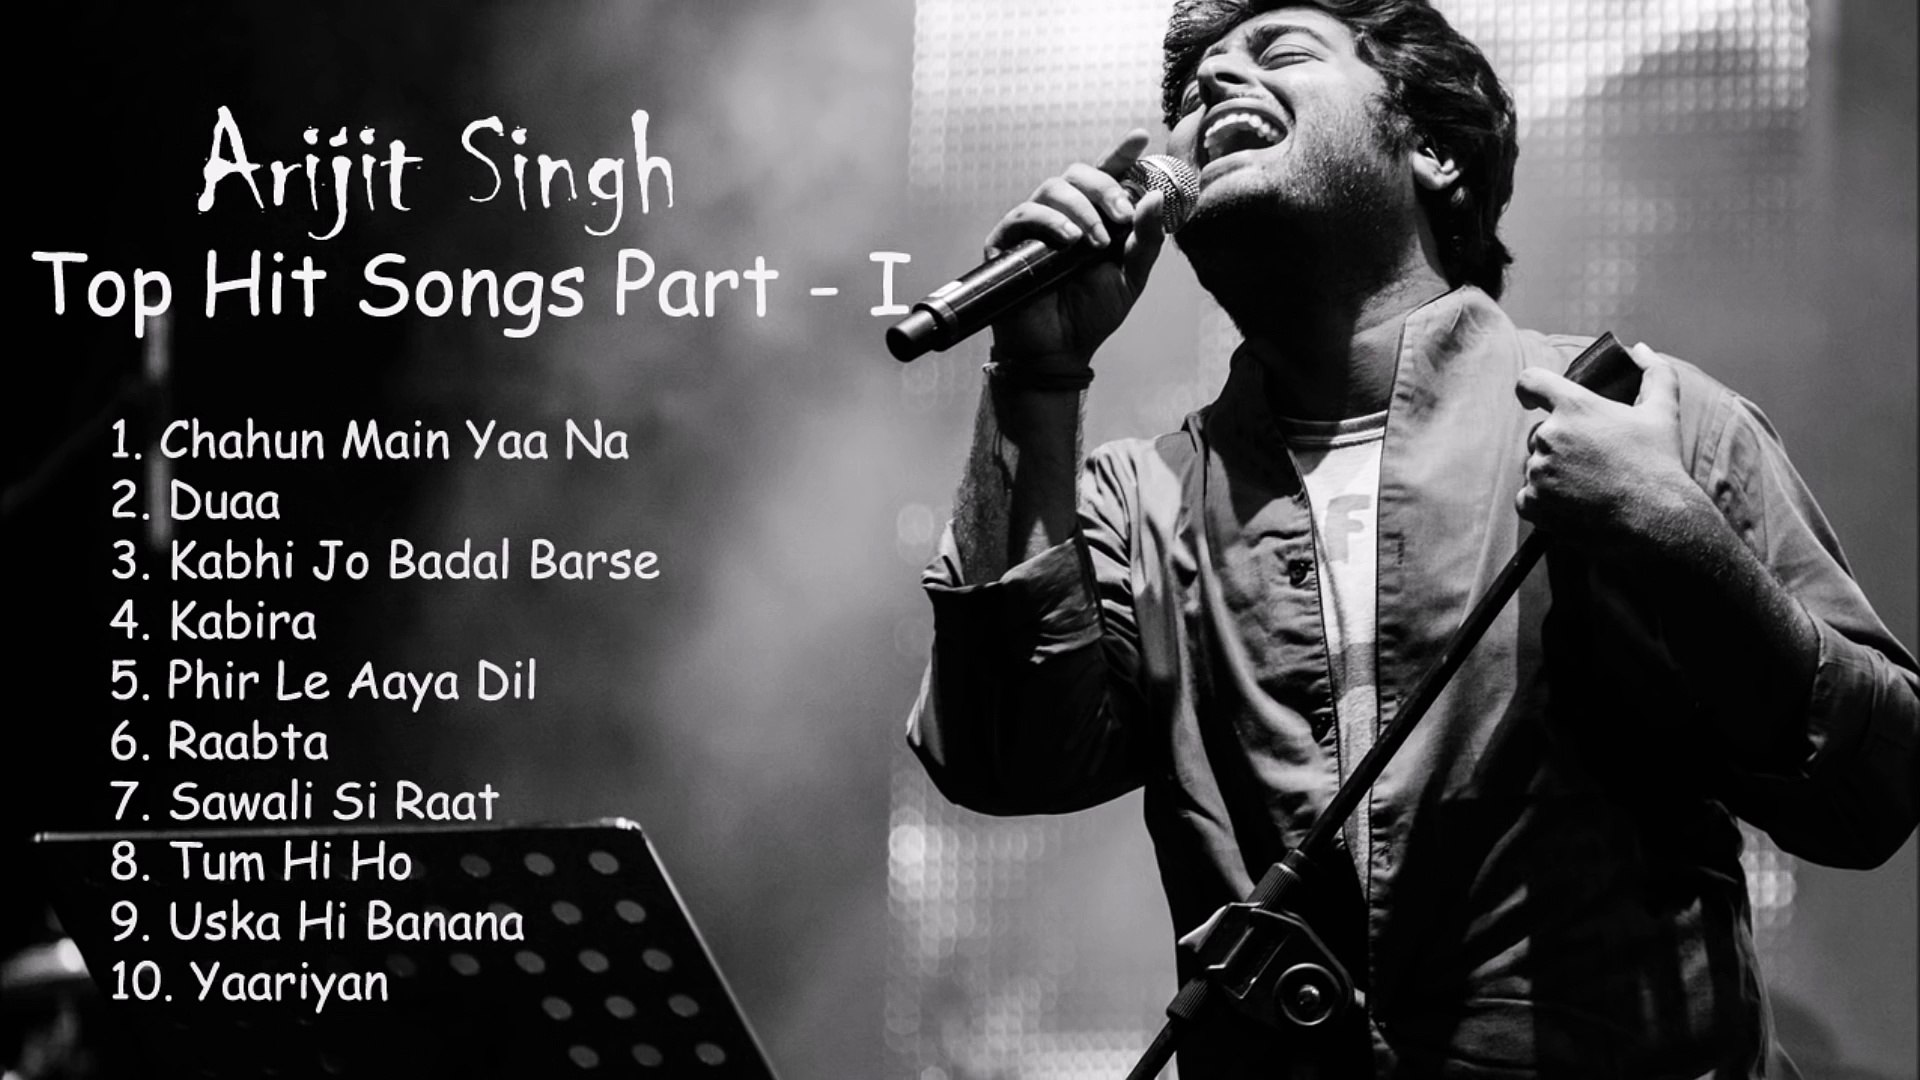 Arijit Singh Best Top Hit Songs Part - I _ Arijit Singh New Songs